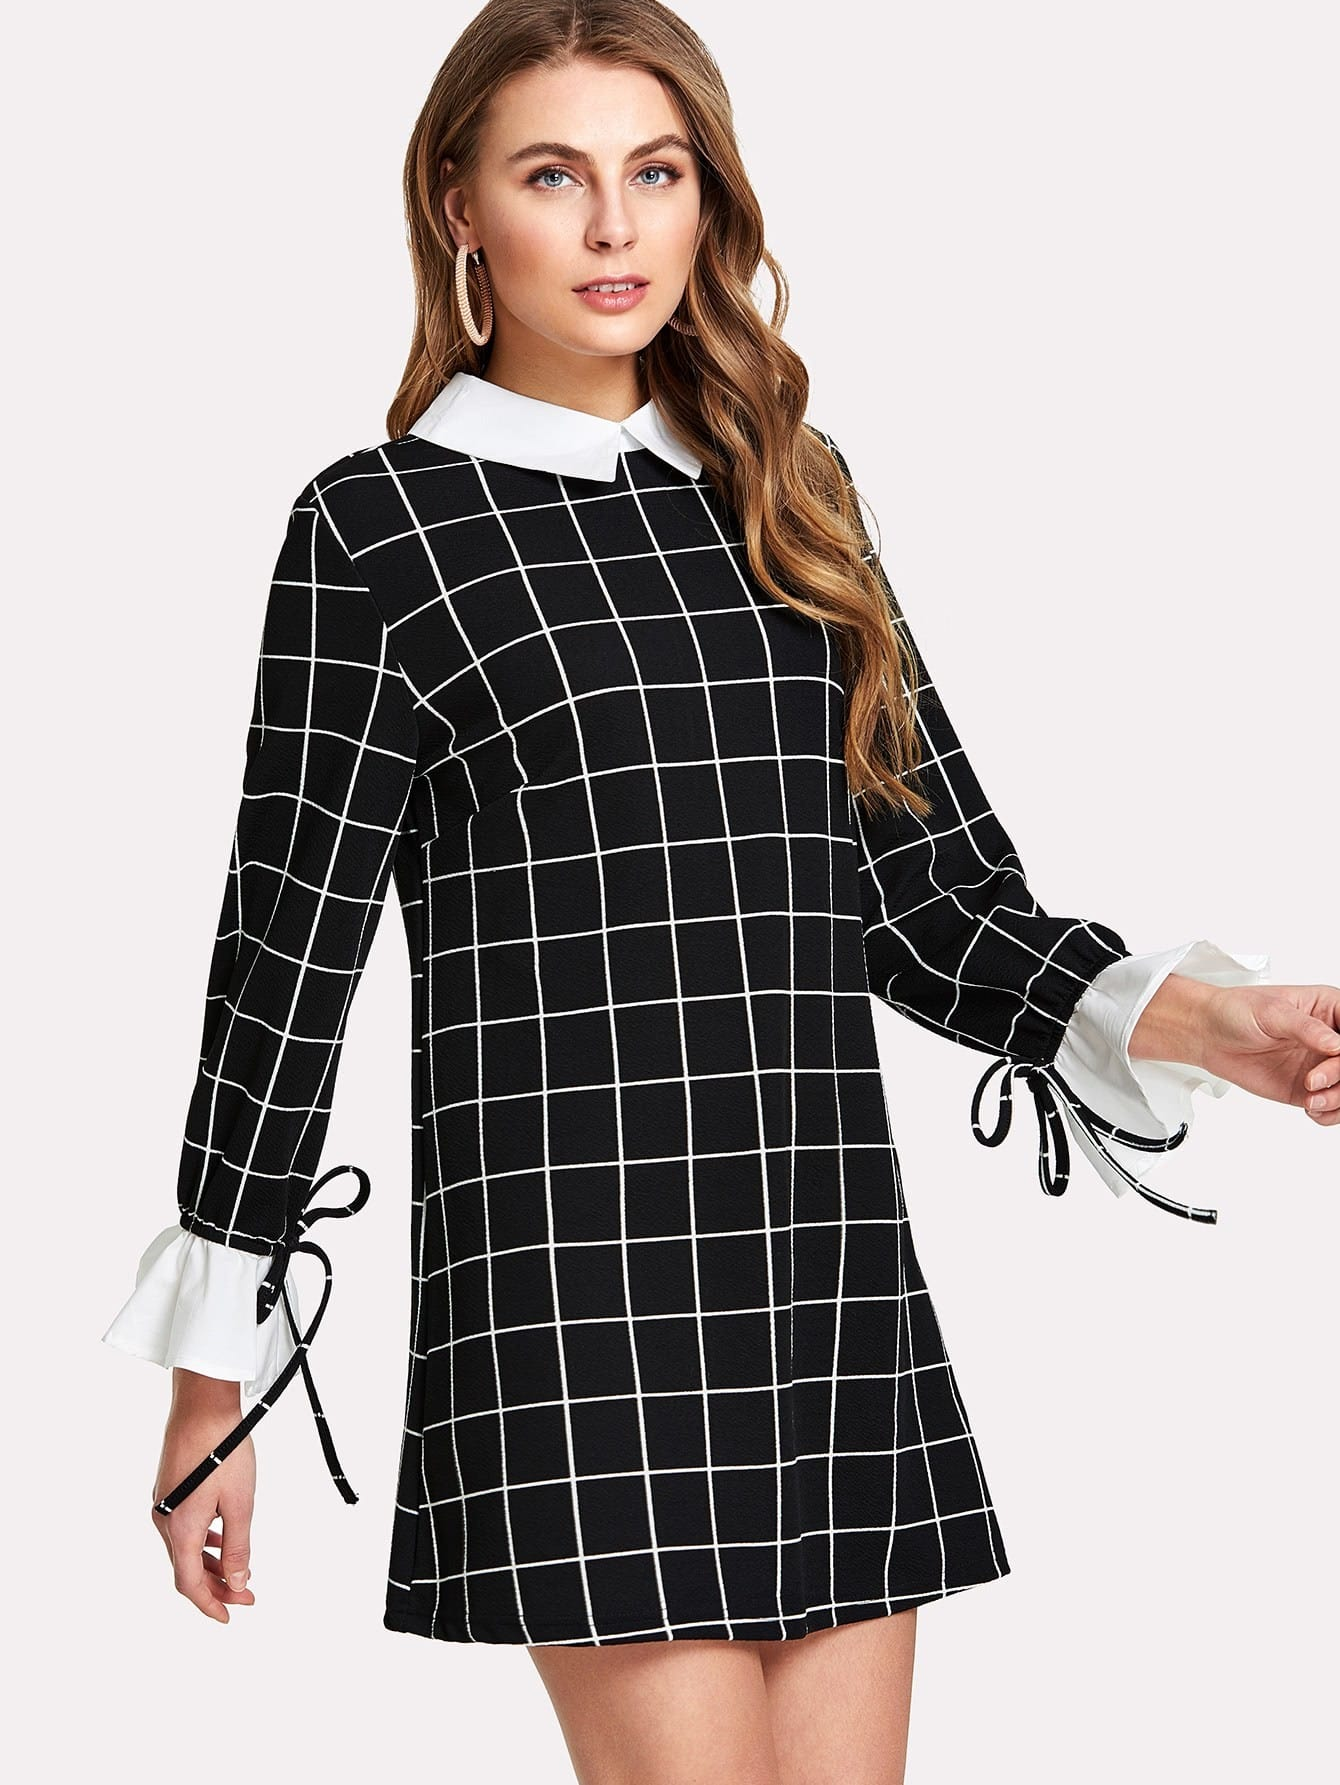 Contrast Collar And Cuff Grid Dress lace collar and cuff tunic dress